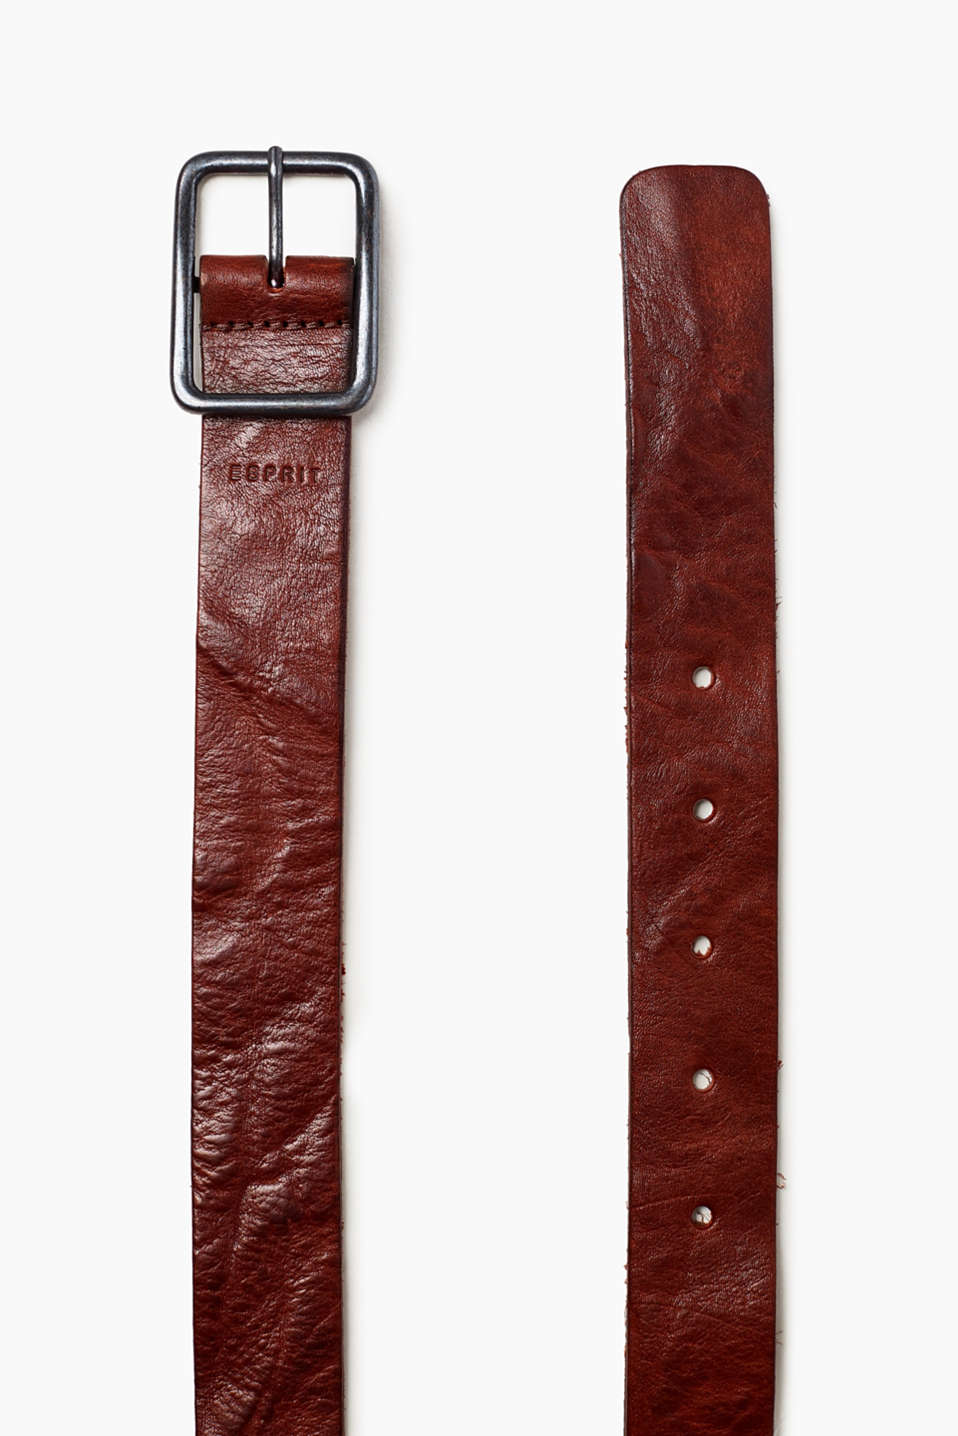 In a vintage look and with a distinctive buckle, this genuine cowhide leather belt is perfect for jeans